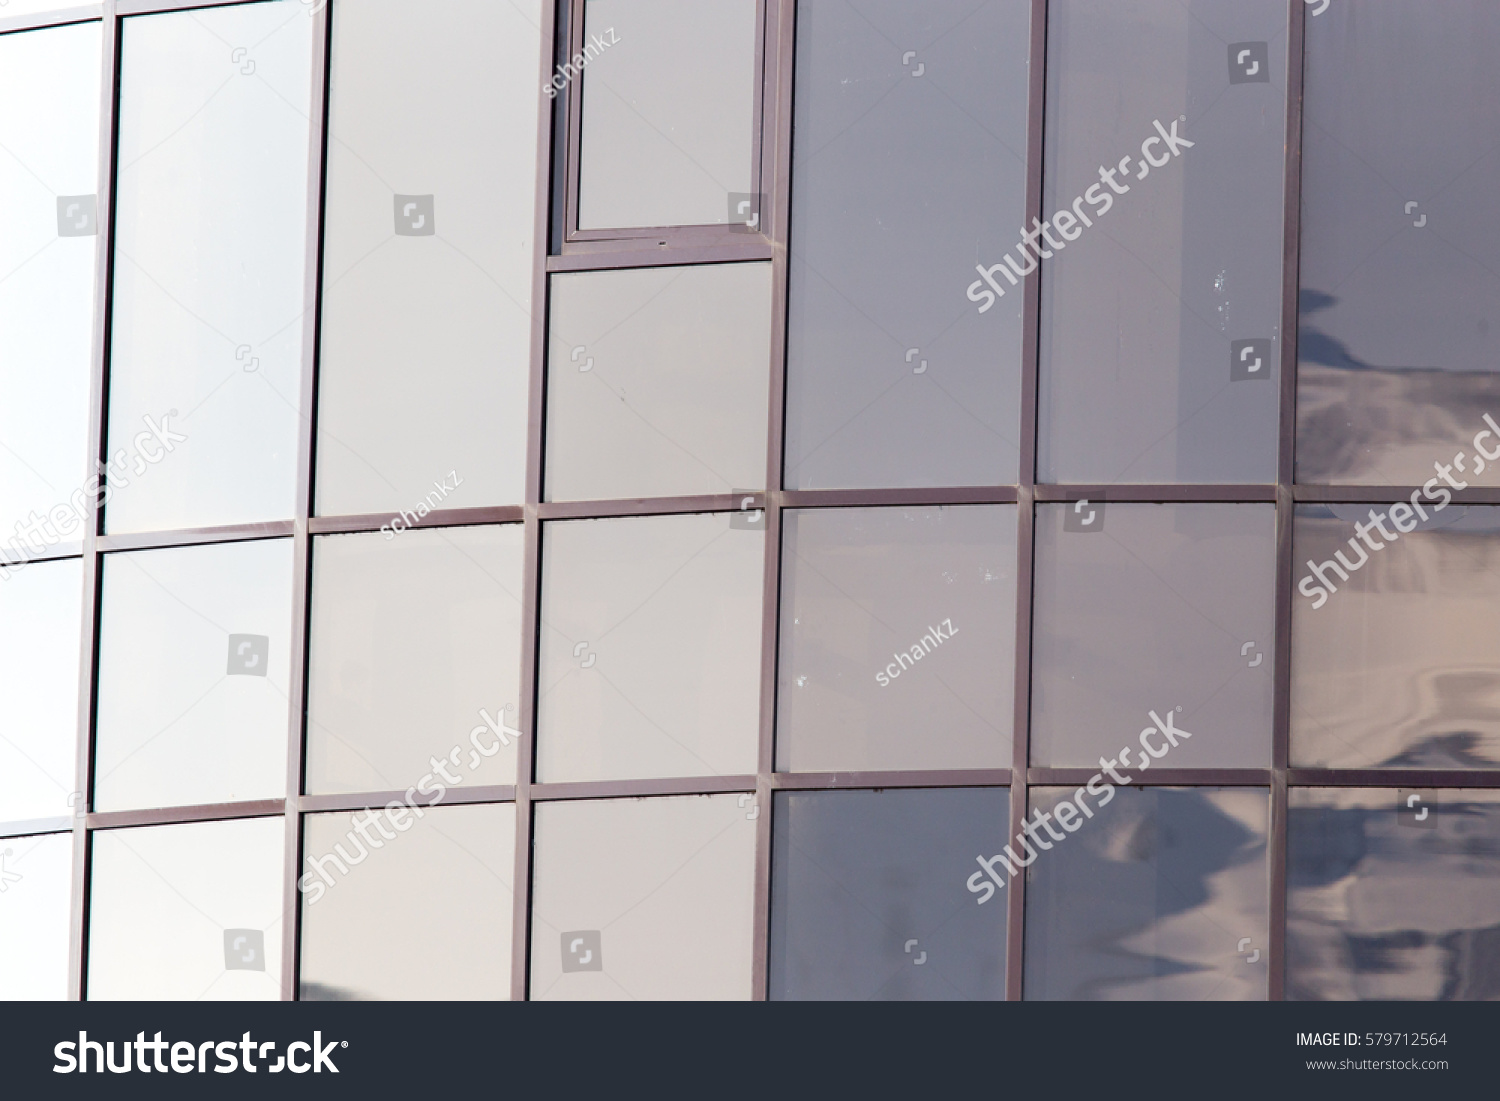 Dorable Wire Reinforced Glass Windows Elaboration - Electrical ...